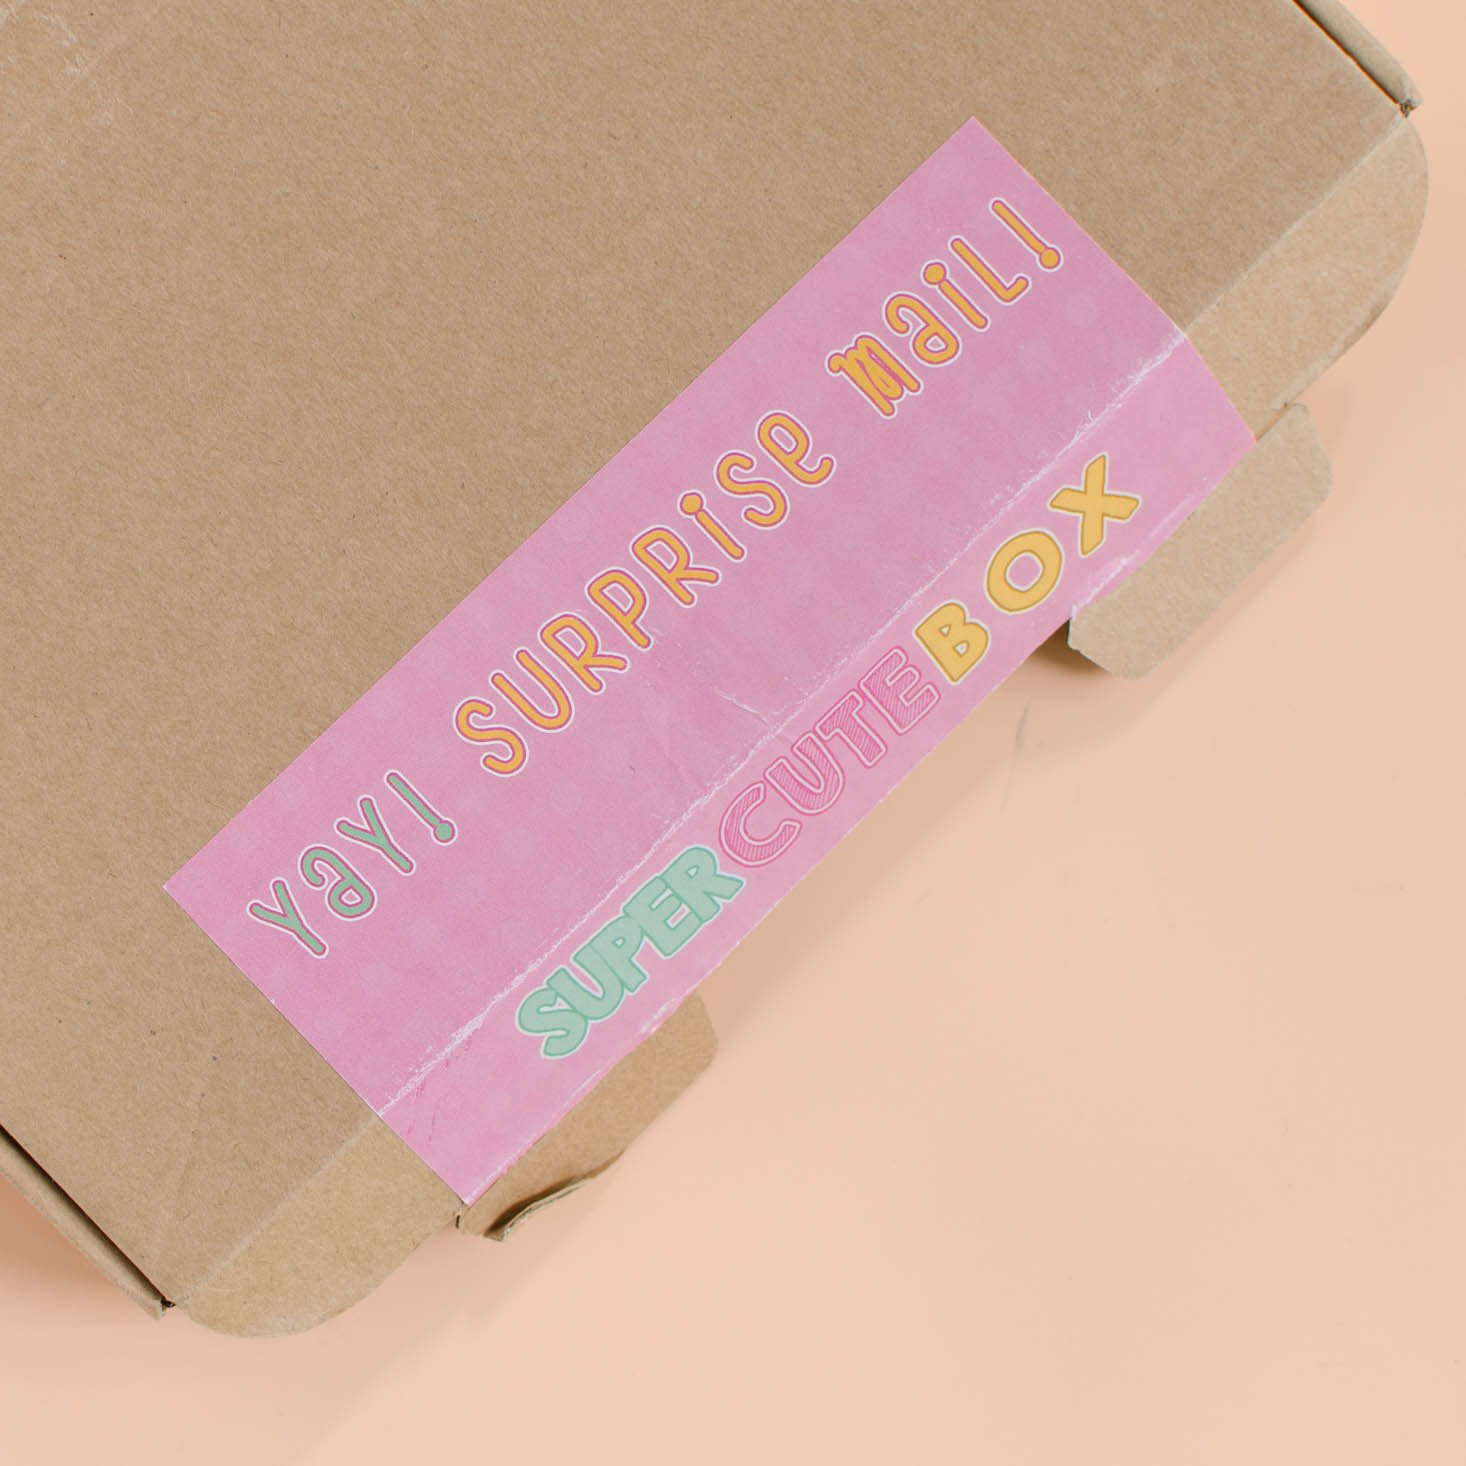 super-cute-box-september-2016-002